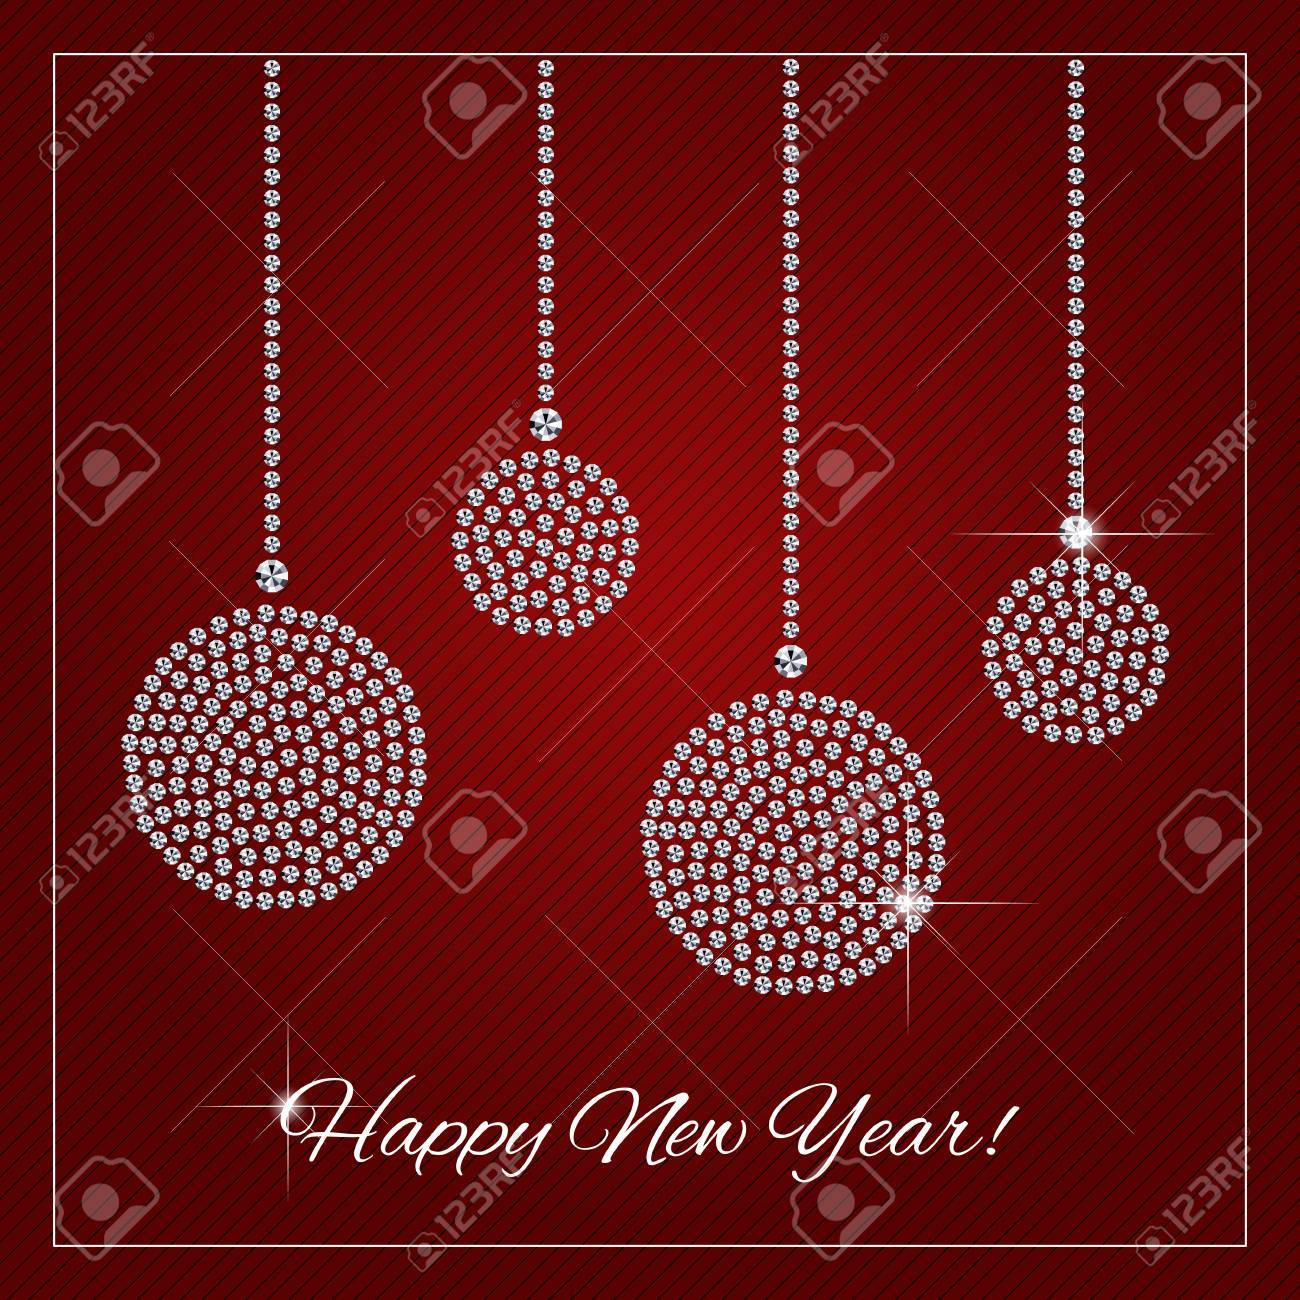 christmas new year greeting card poster shimmering diamond luxury christmas ornaments template